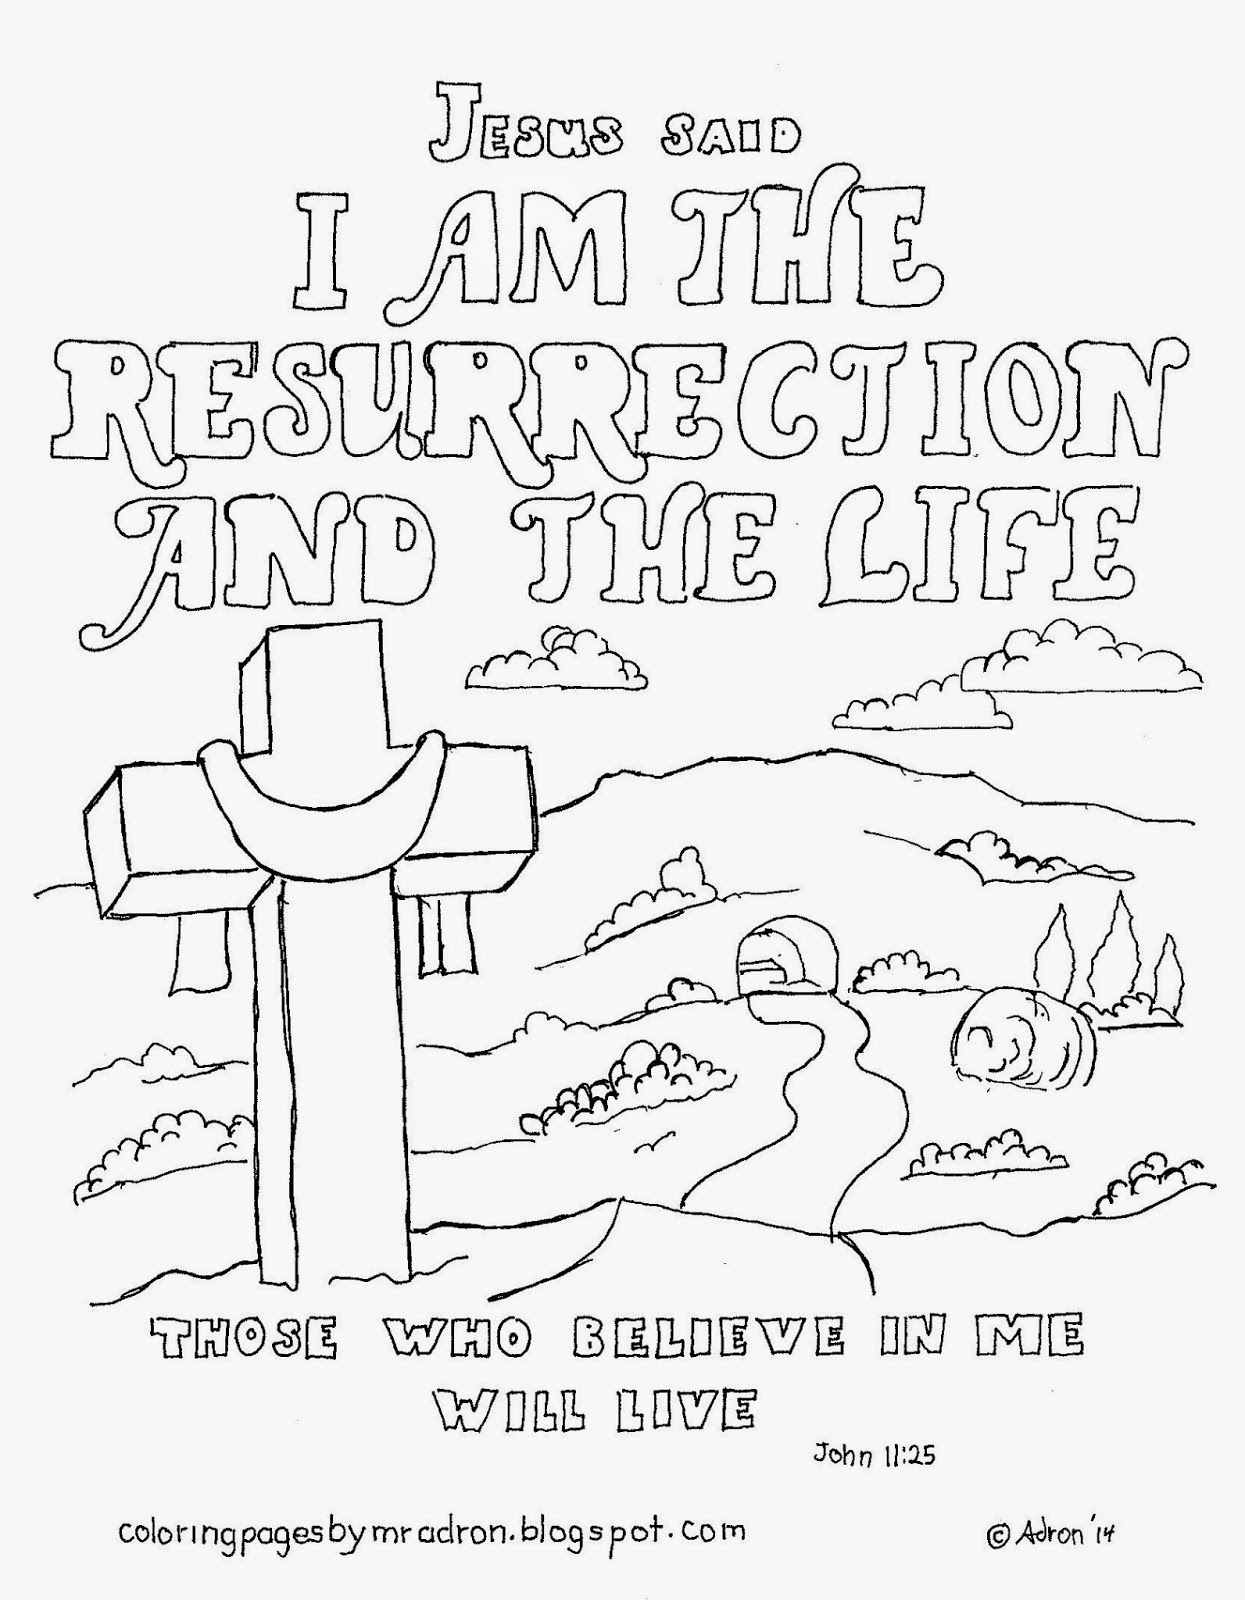 Coloring Pages for Kids by Mr. Adron: I Am The